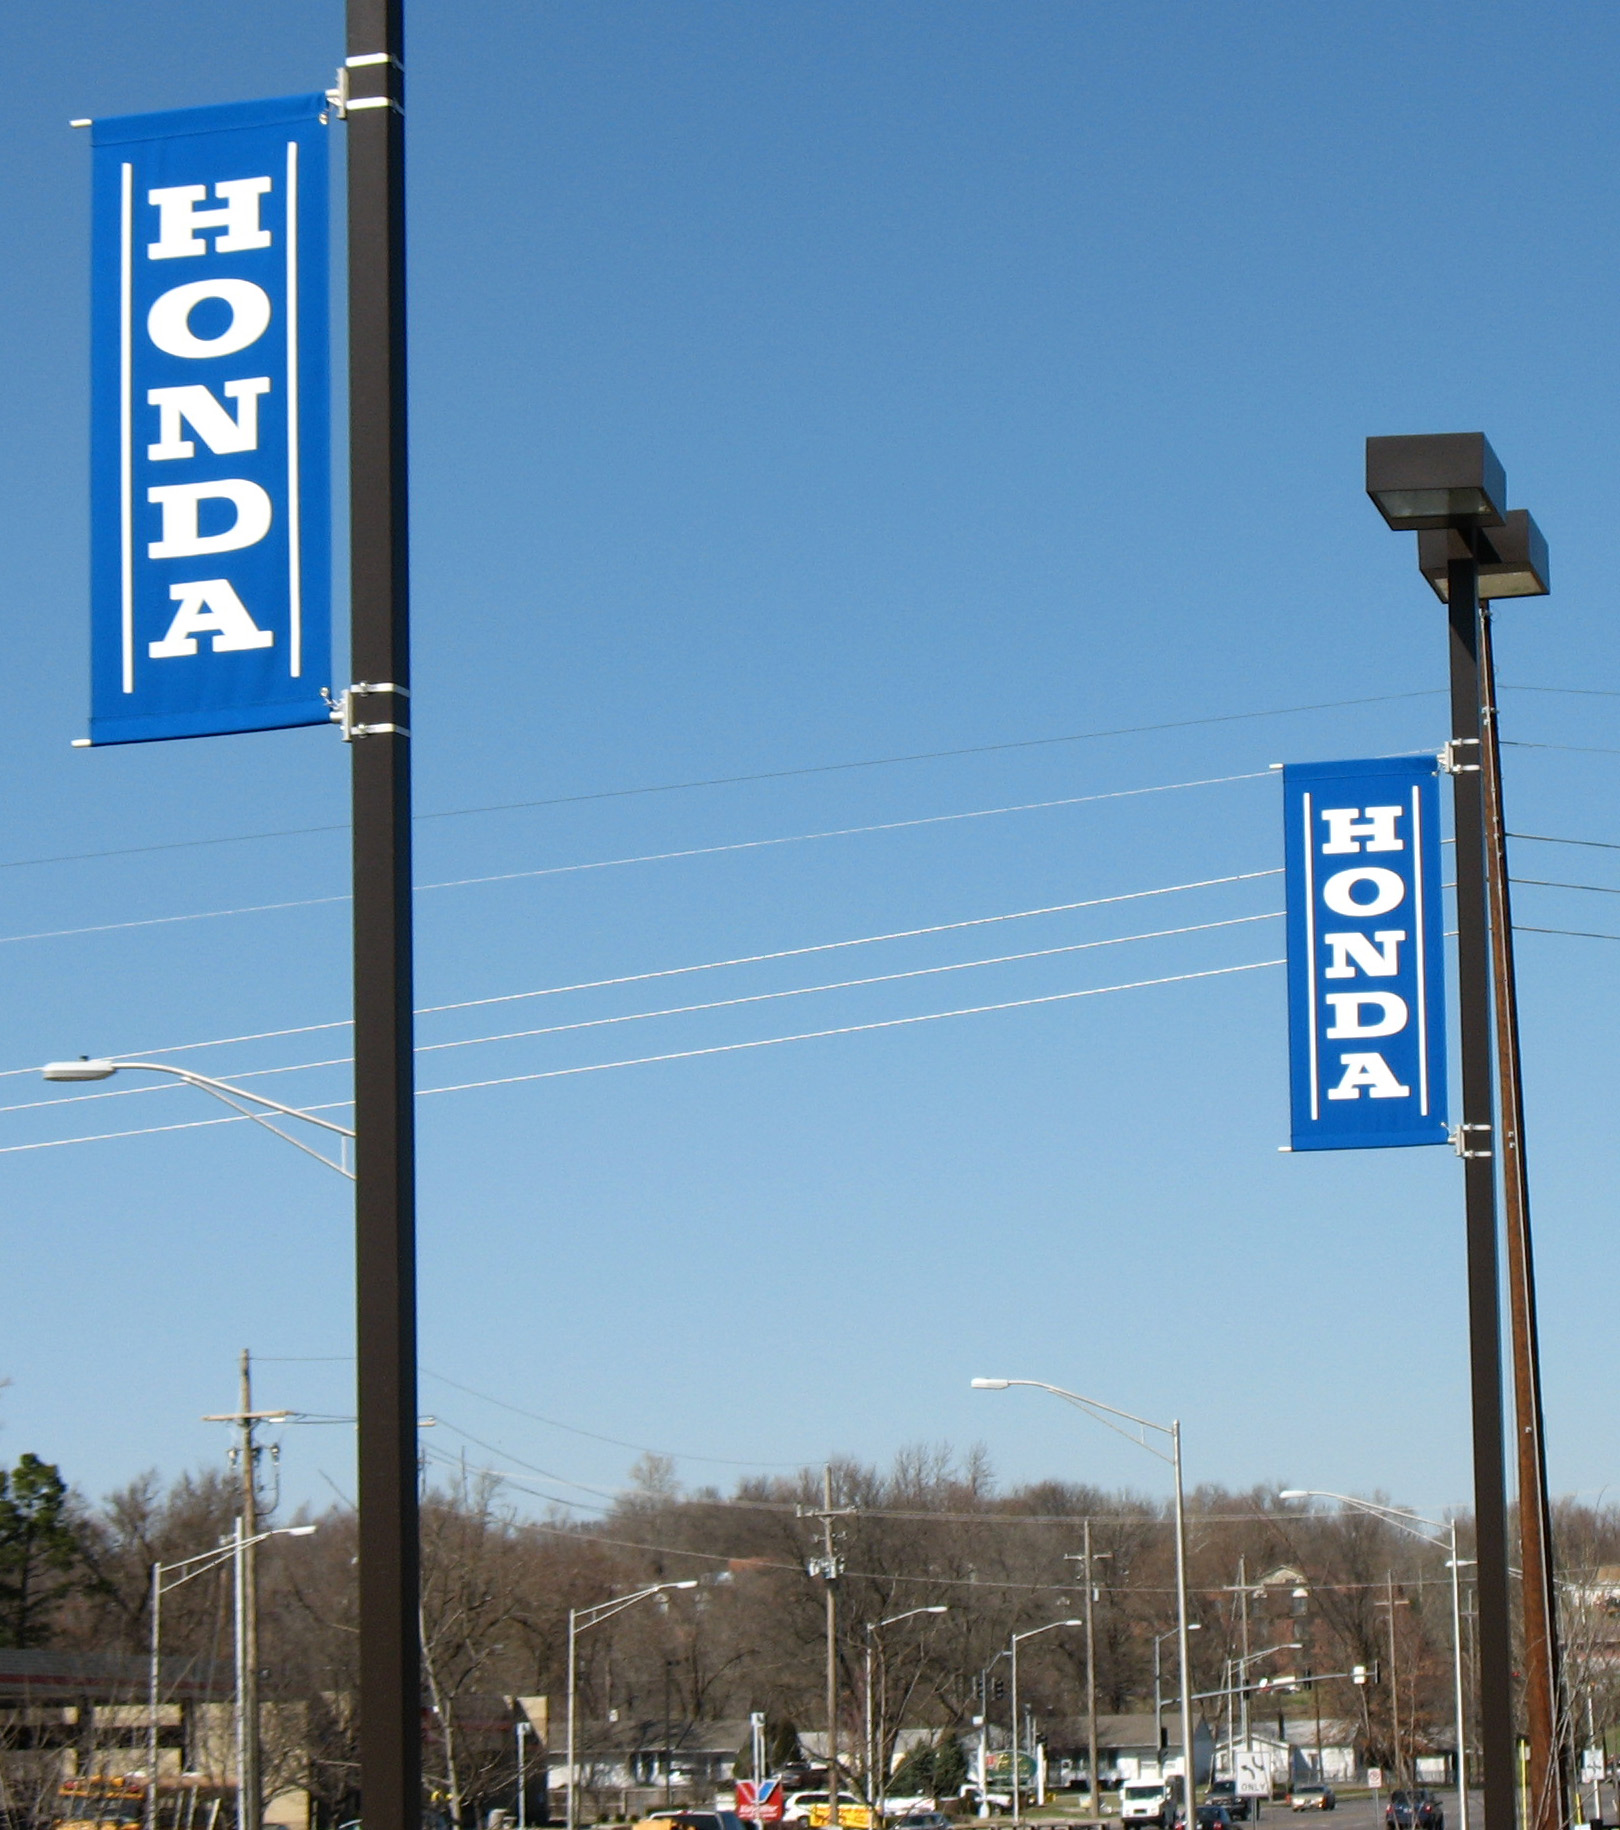 Boulevard / Pole Banners